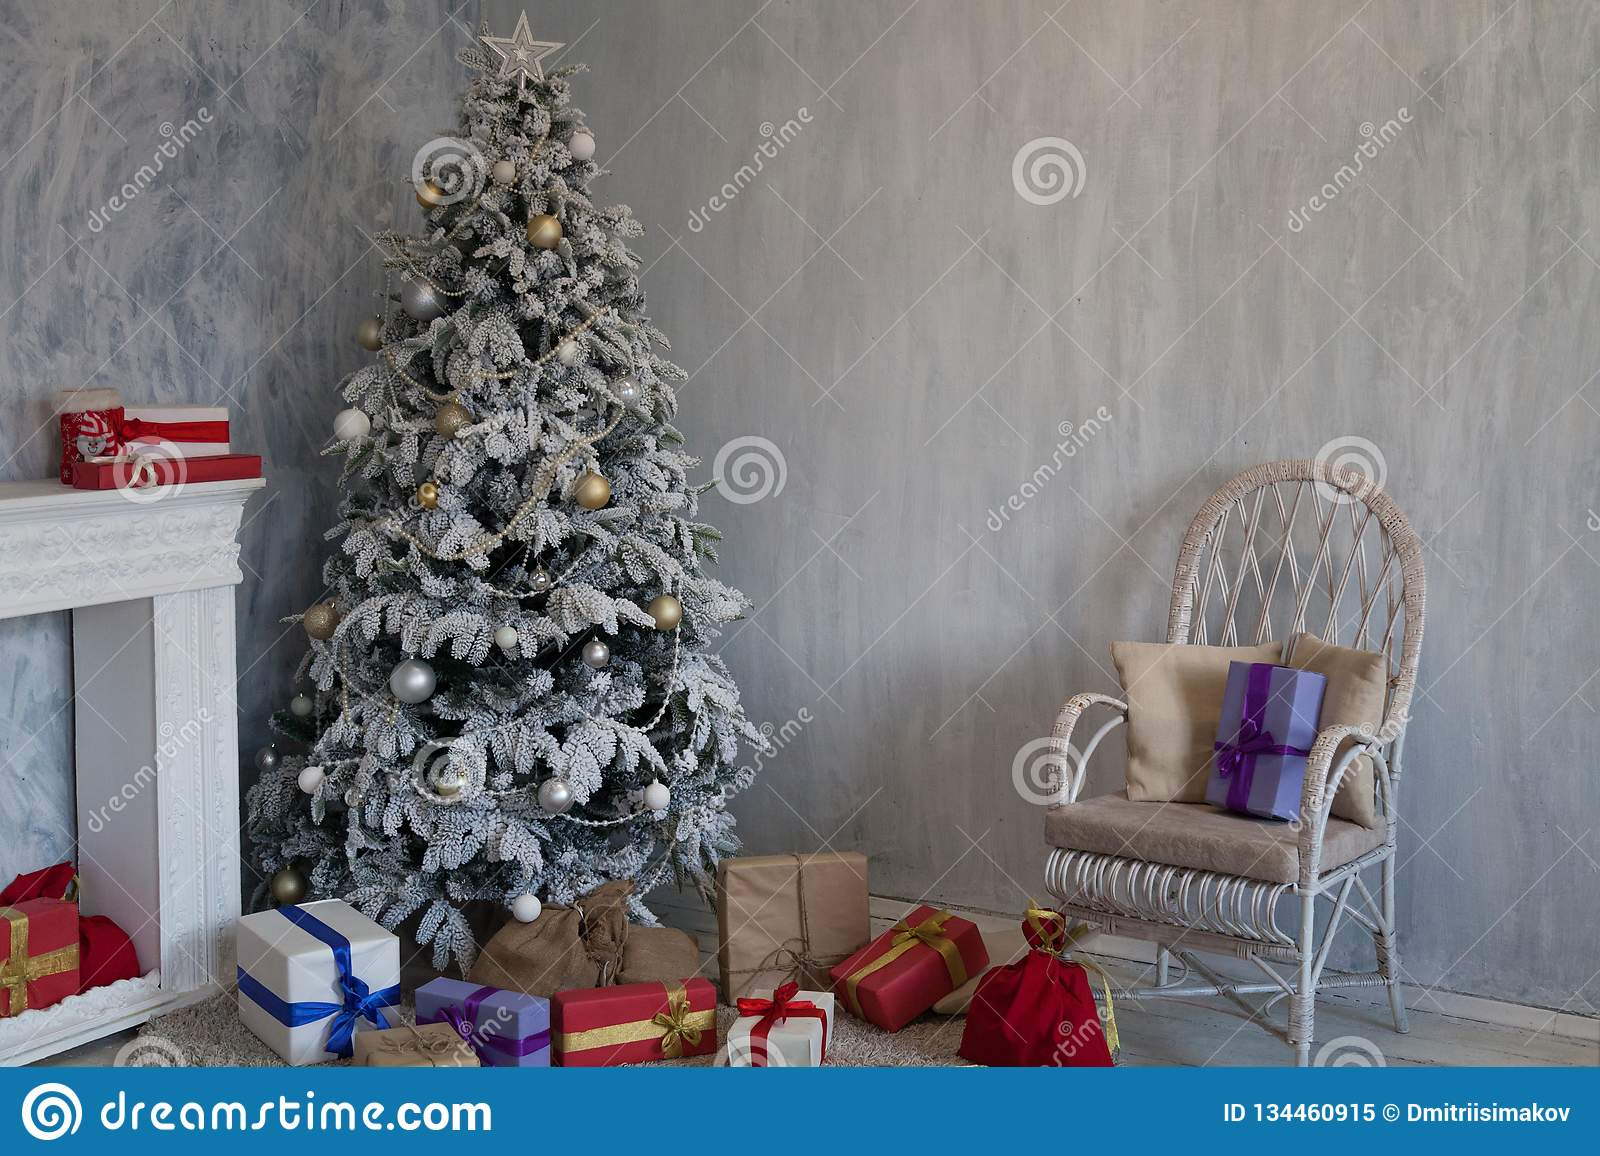 Christmas Tree House Interior New Year Holiday Gifts Winter Decor